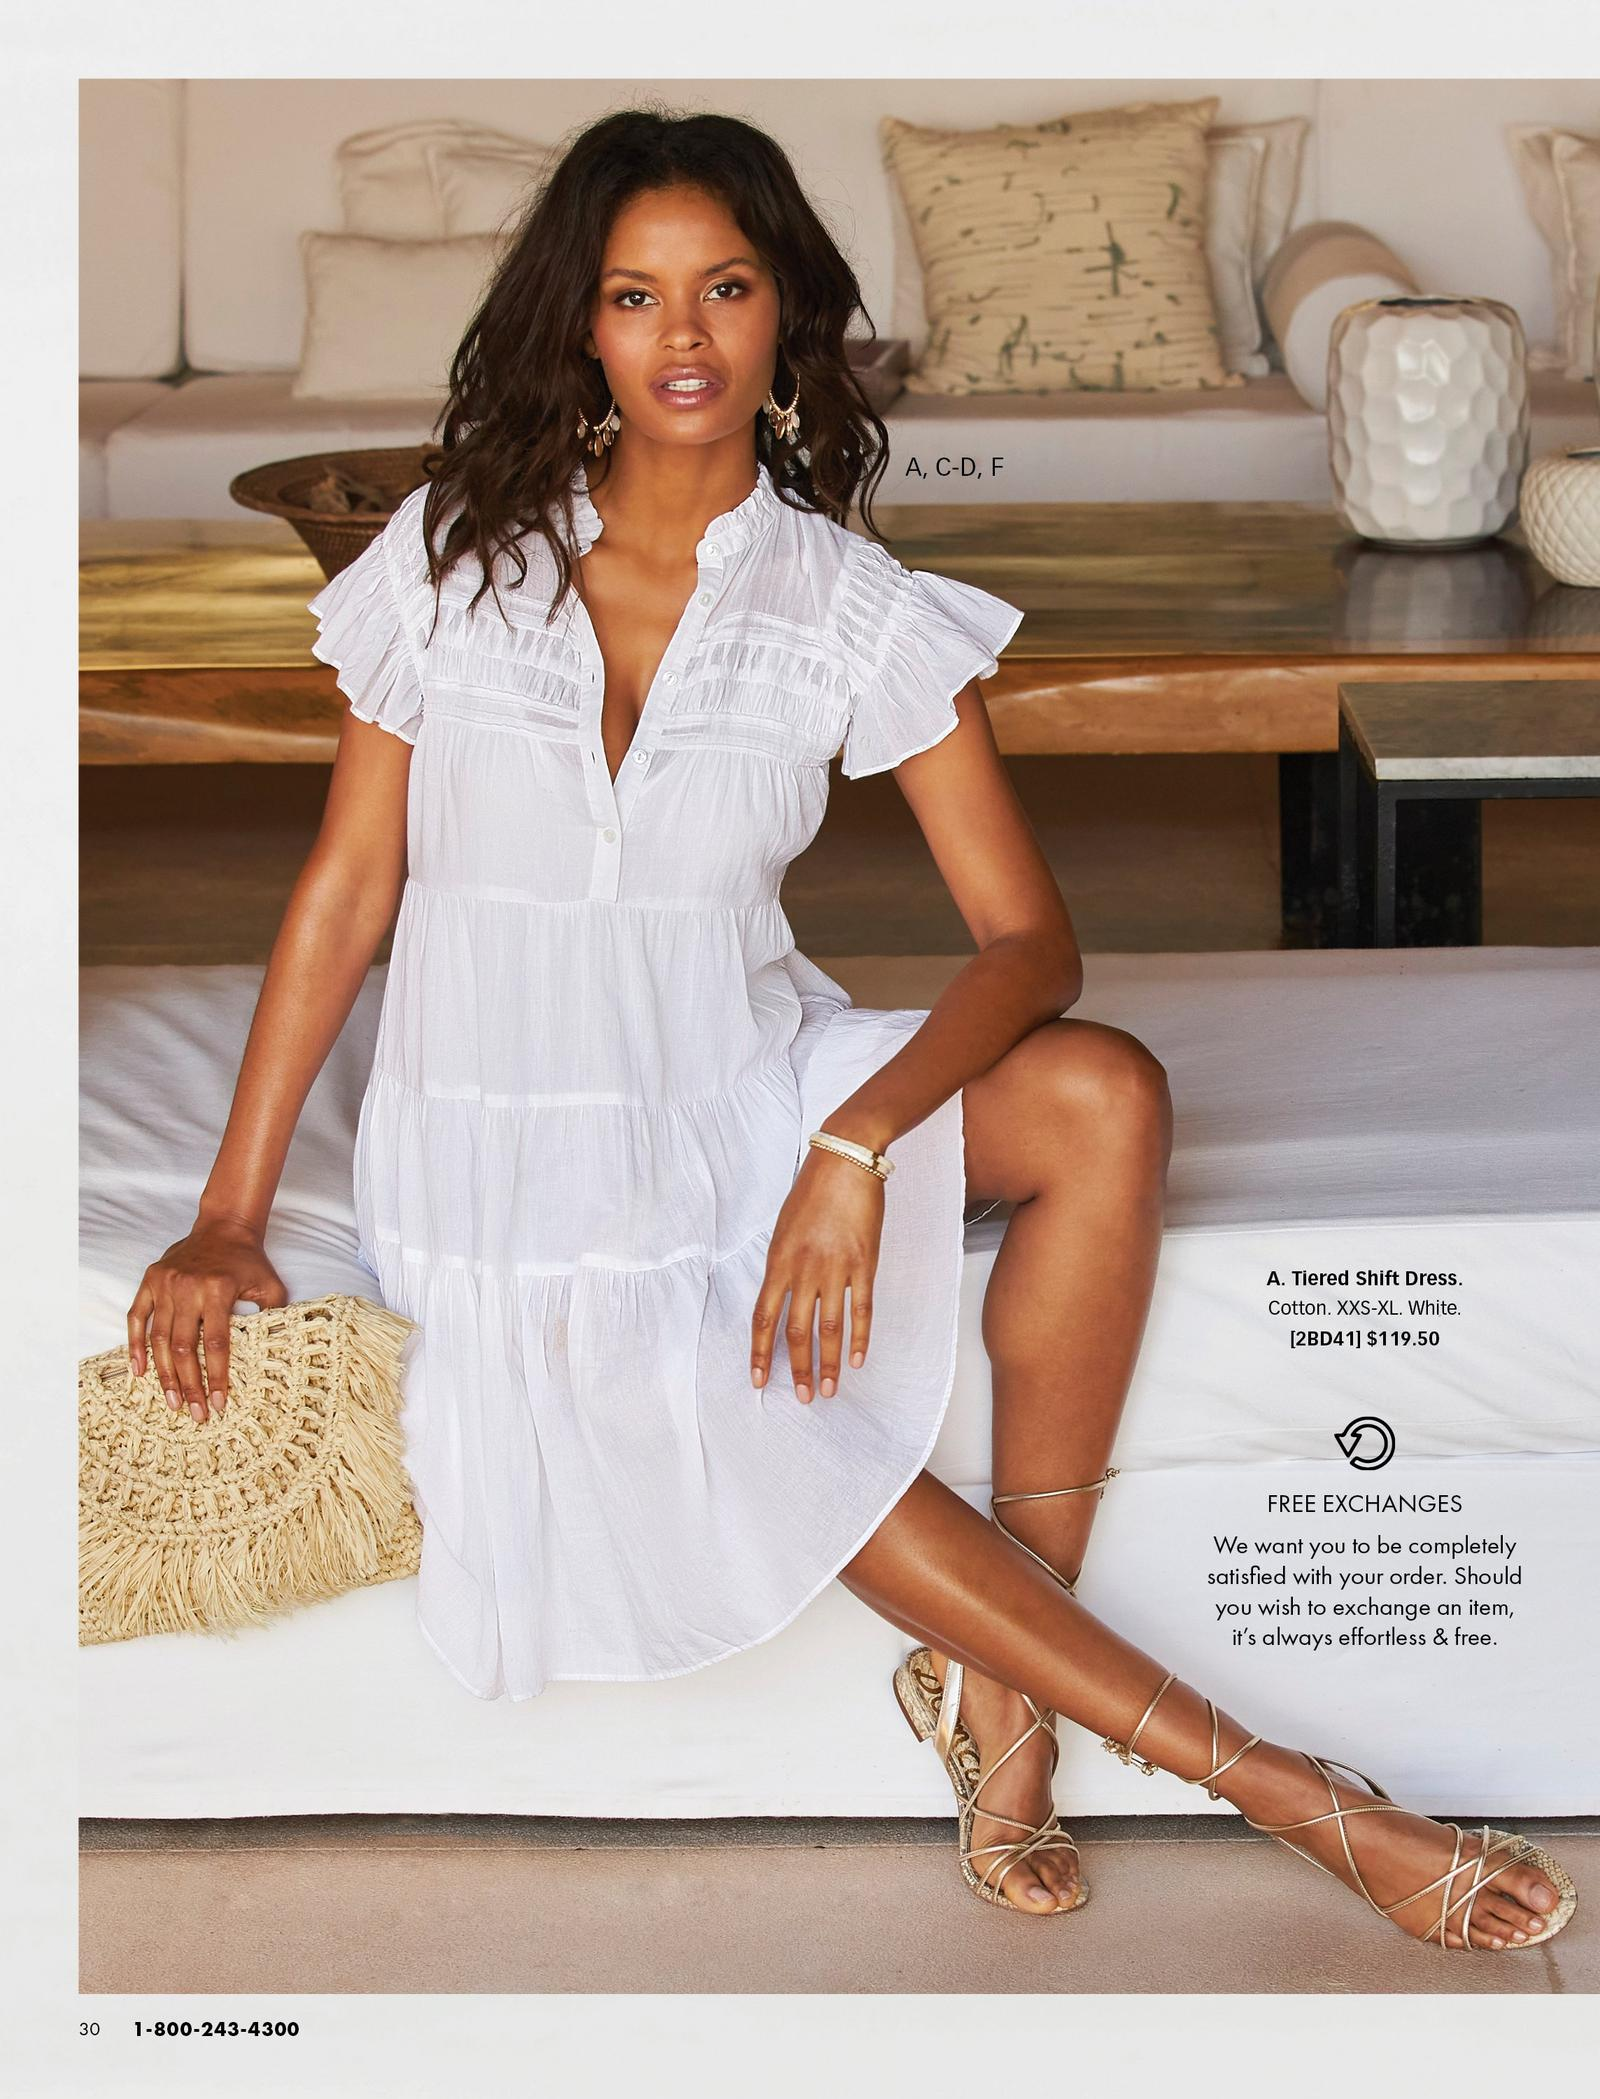 model wearing a white tiered sleeveless shift dress, gold lace-up sandals, and holding a straw clutch.